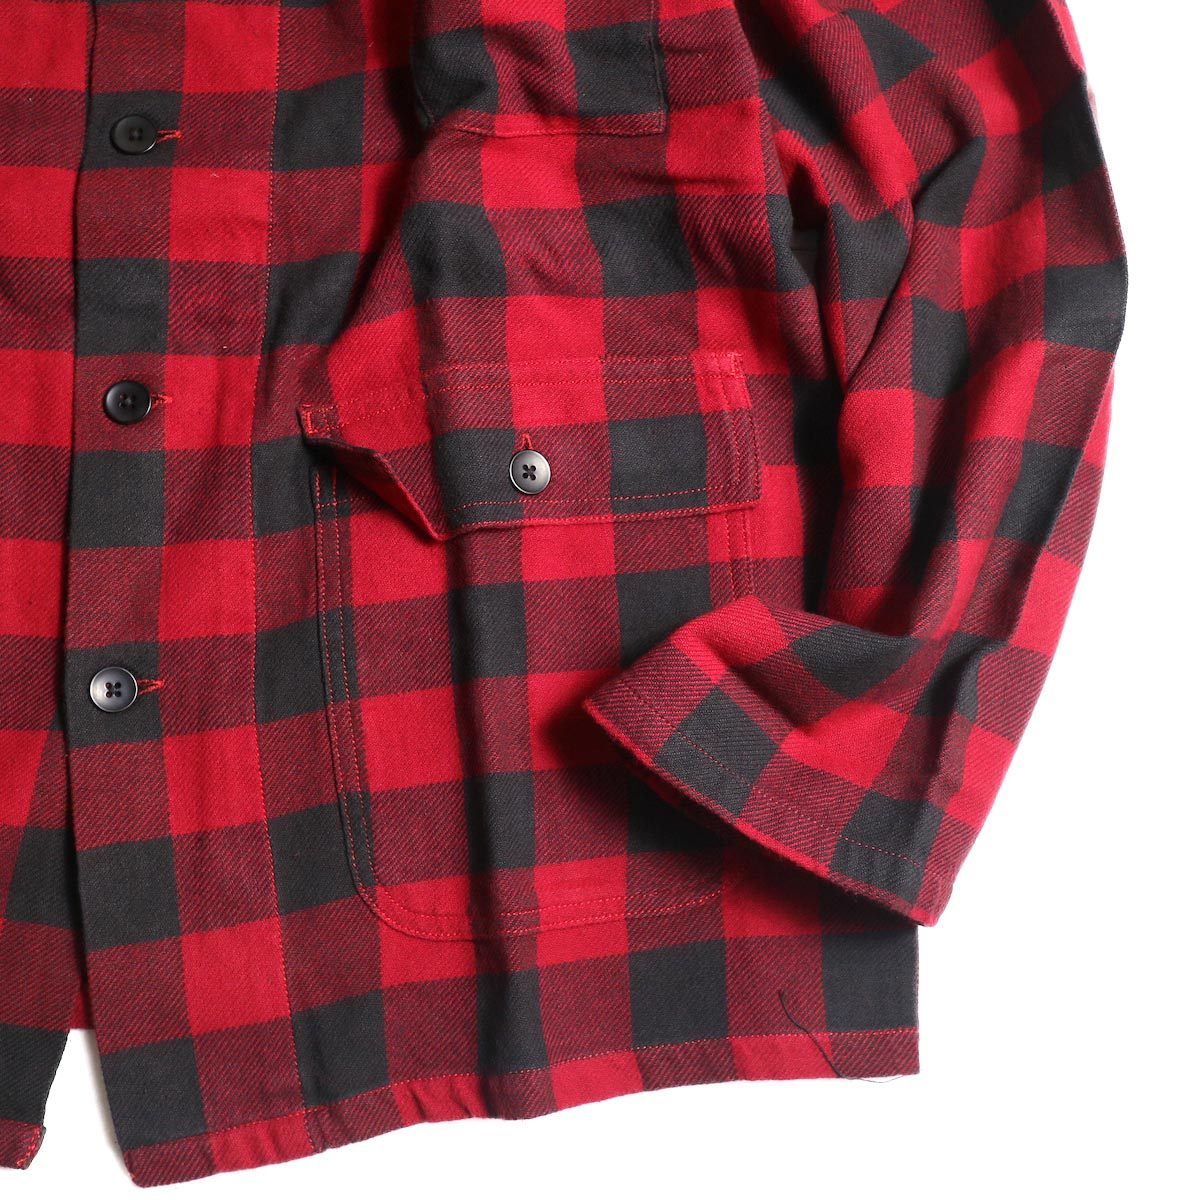 South2 West8 / Hunting Shirt -Plaid Twill (Red/Black)袖、裾